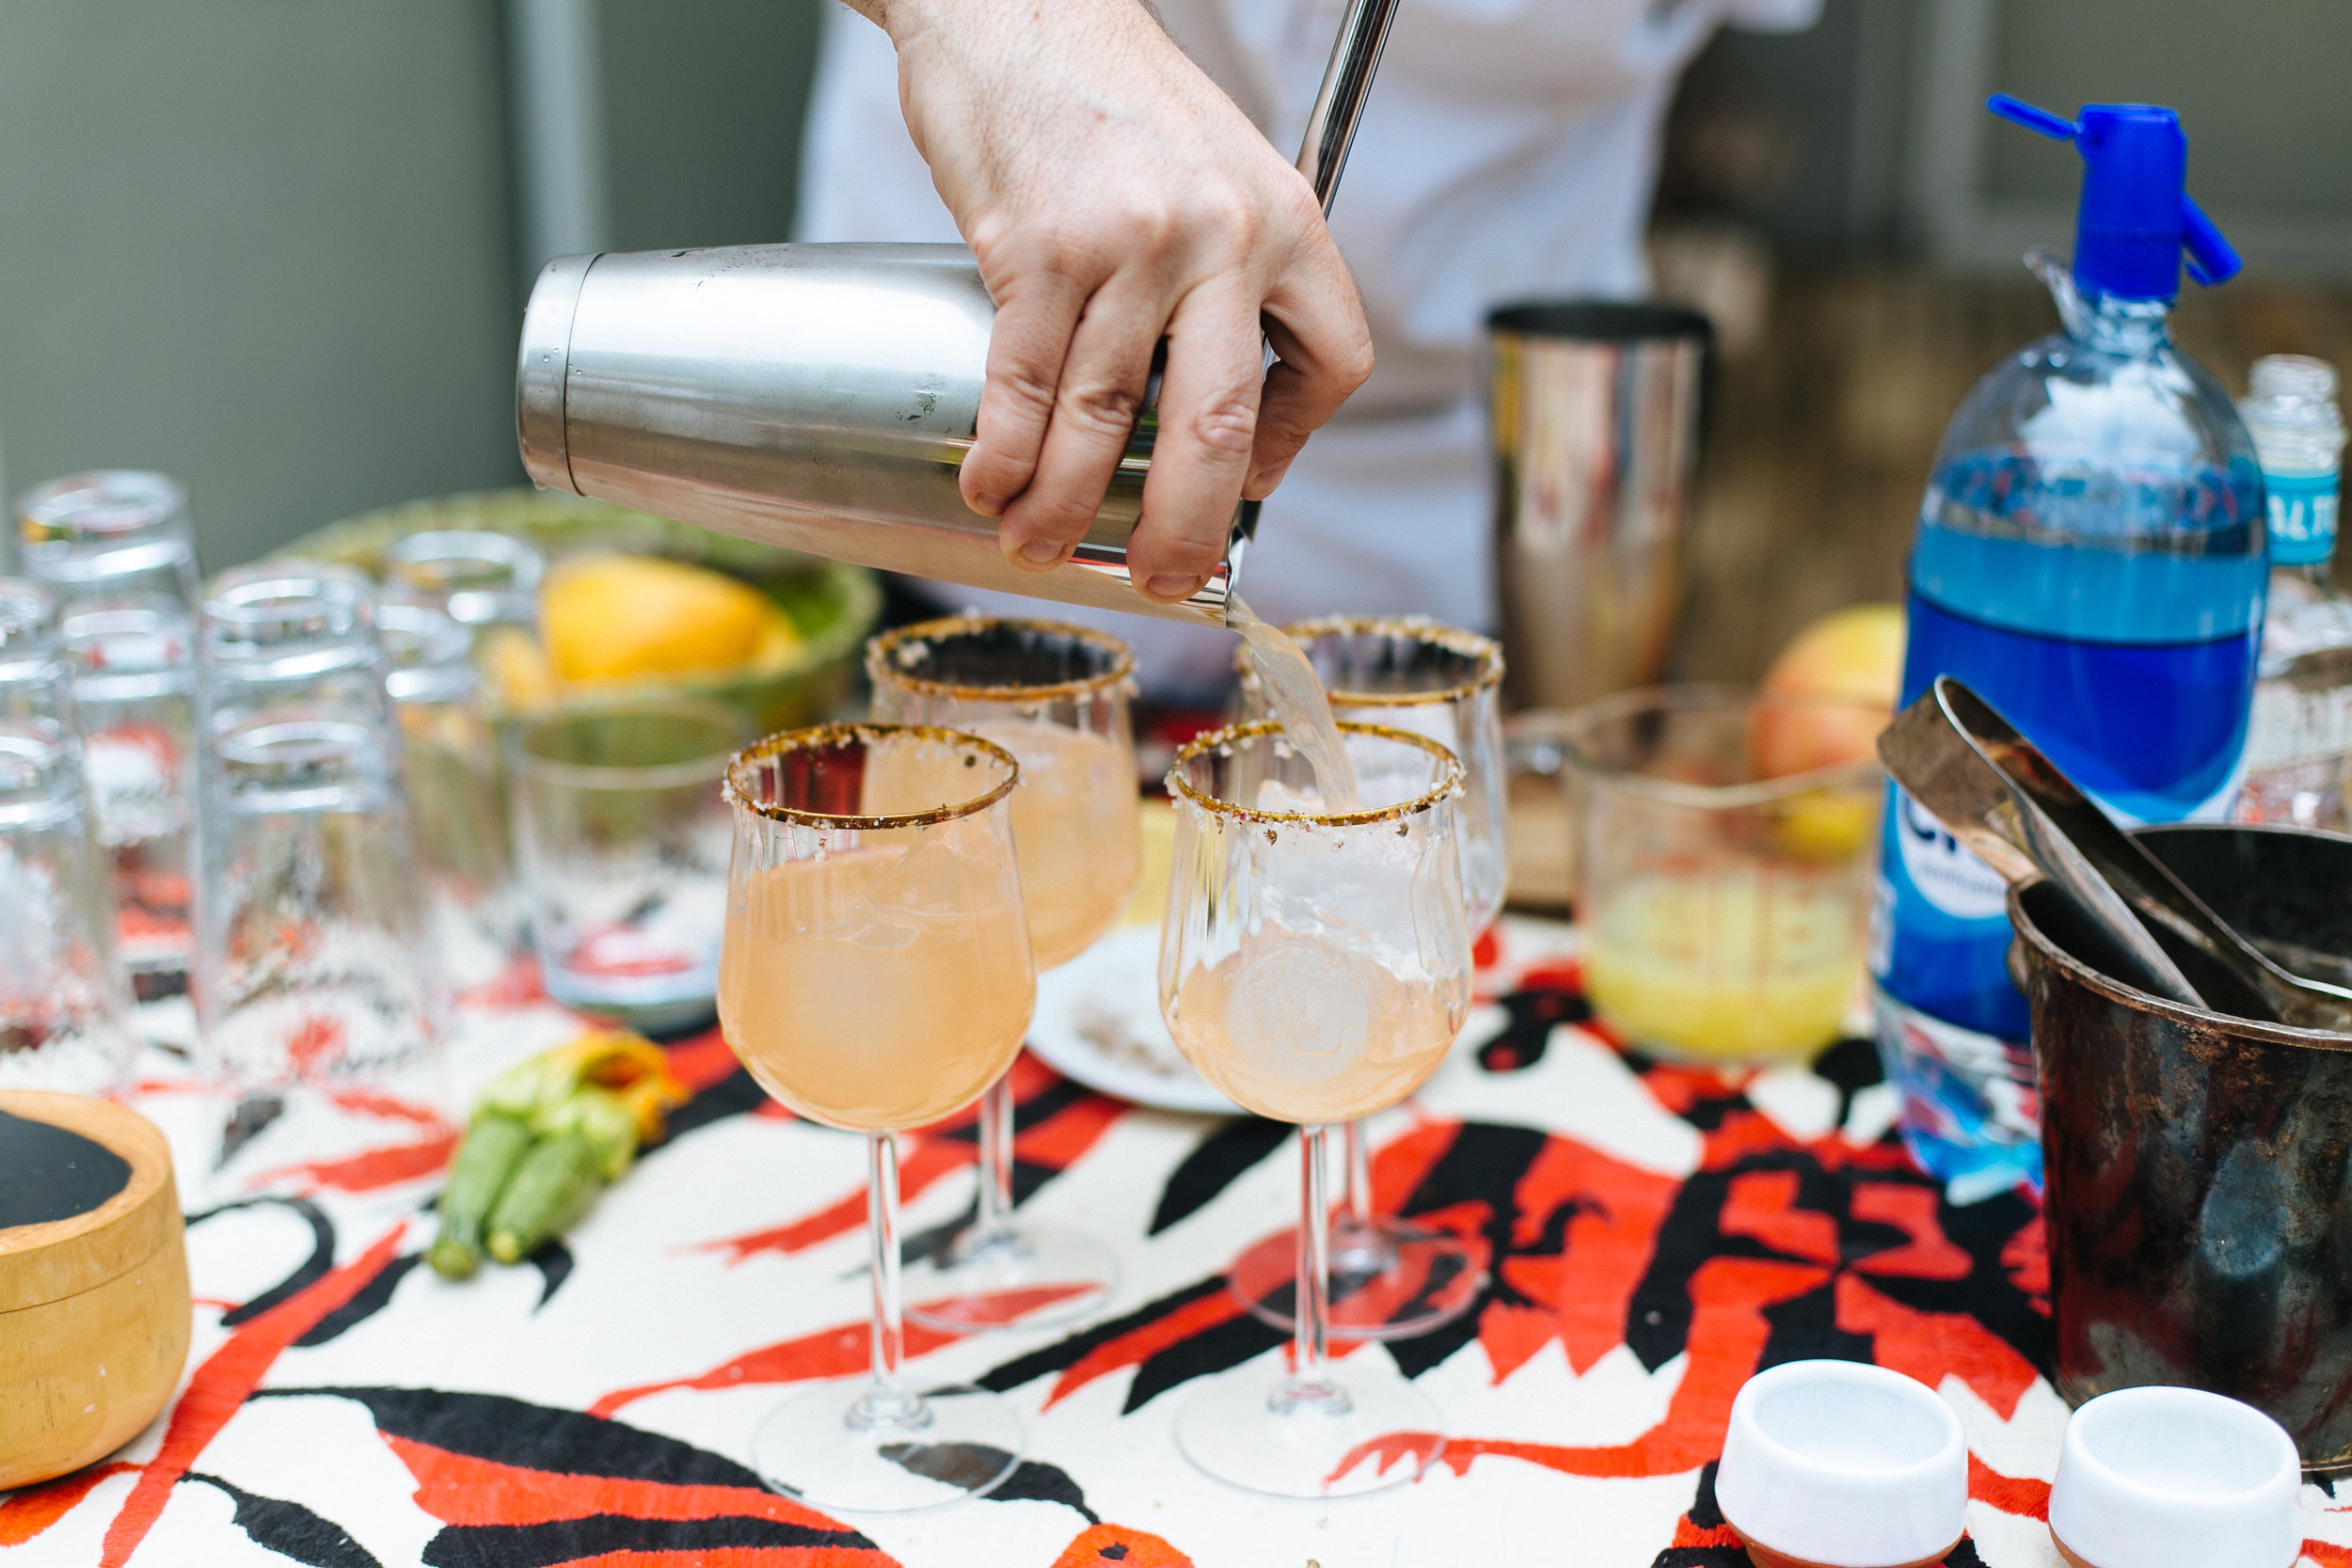 Copy of making cocktails with Altos tequila